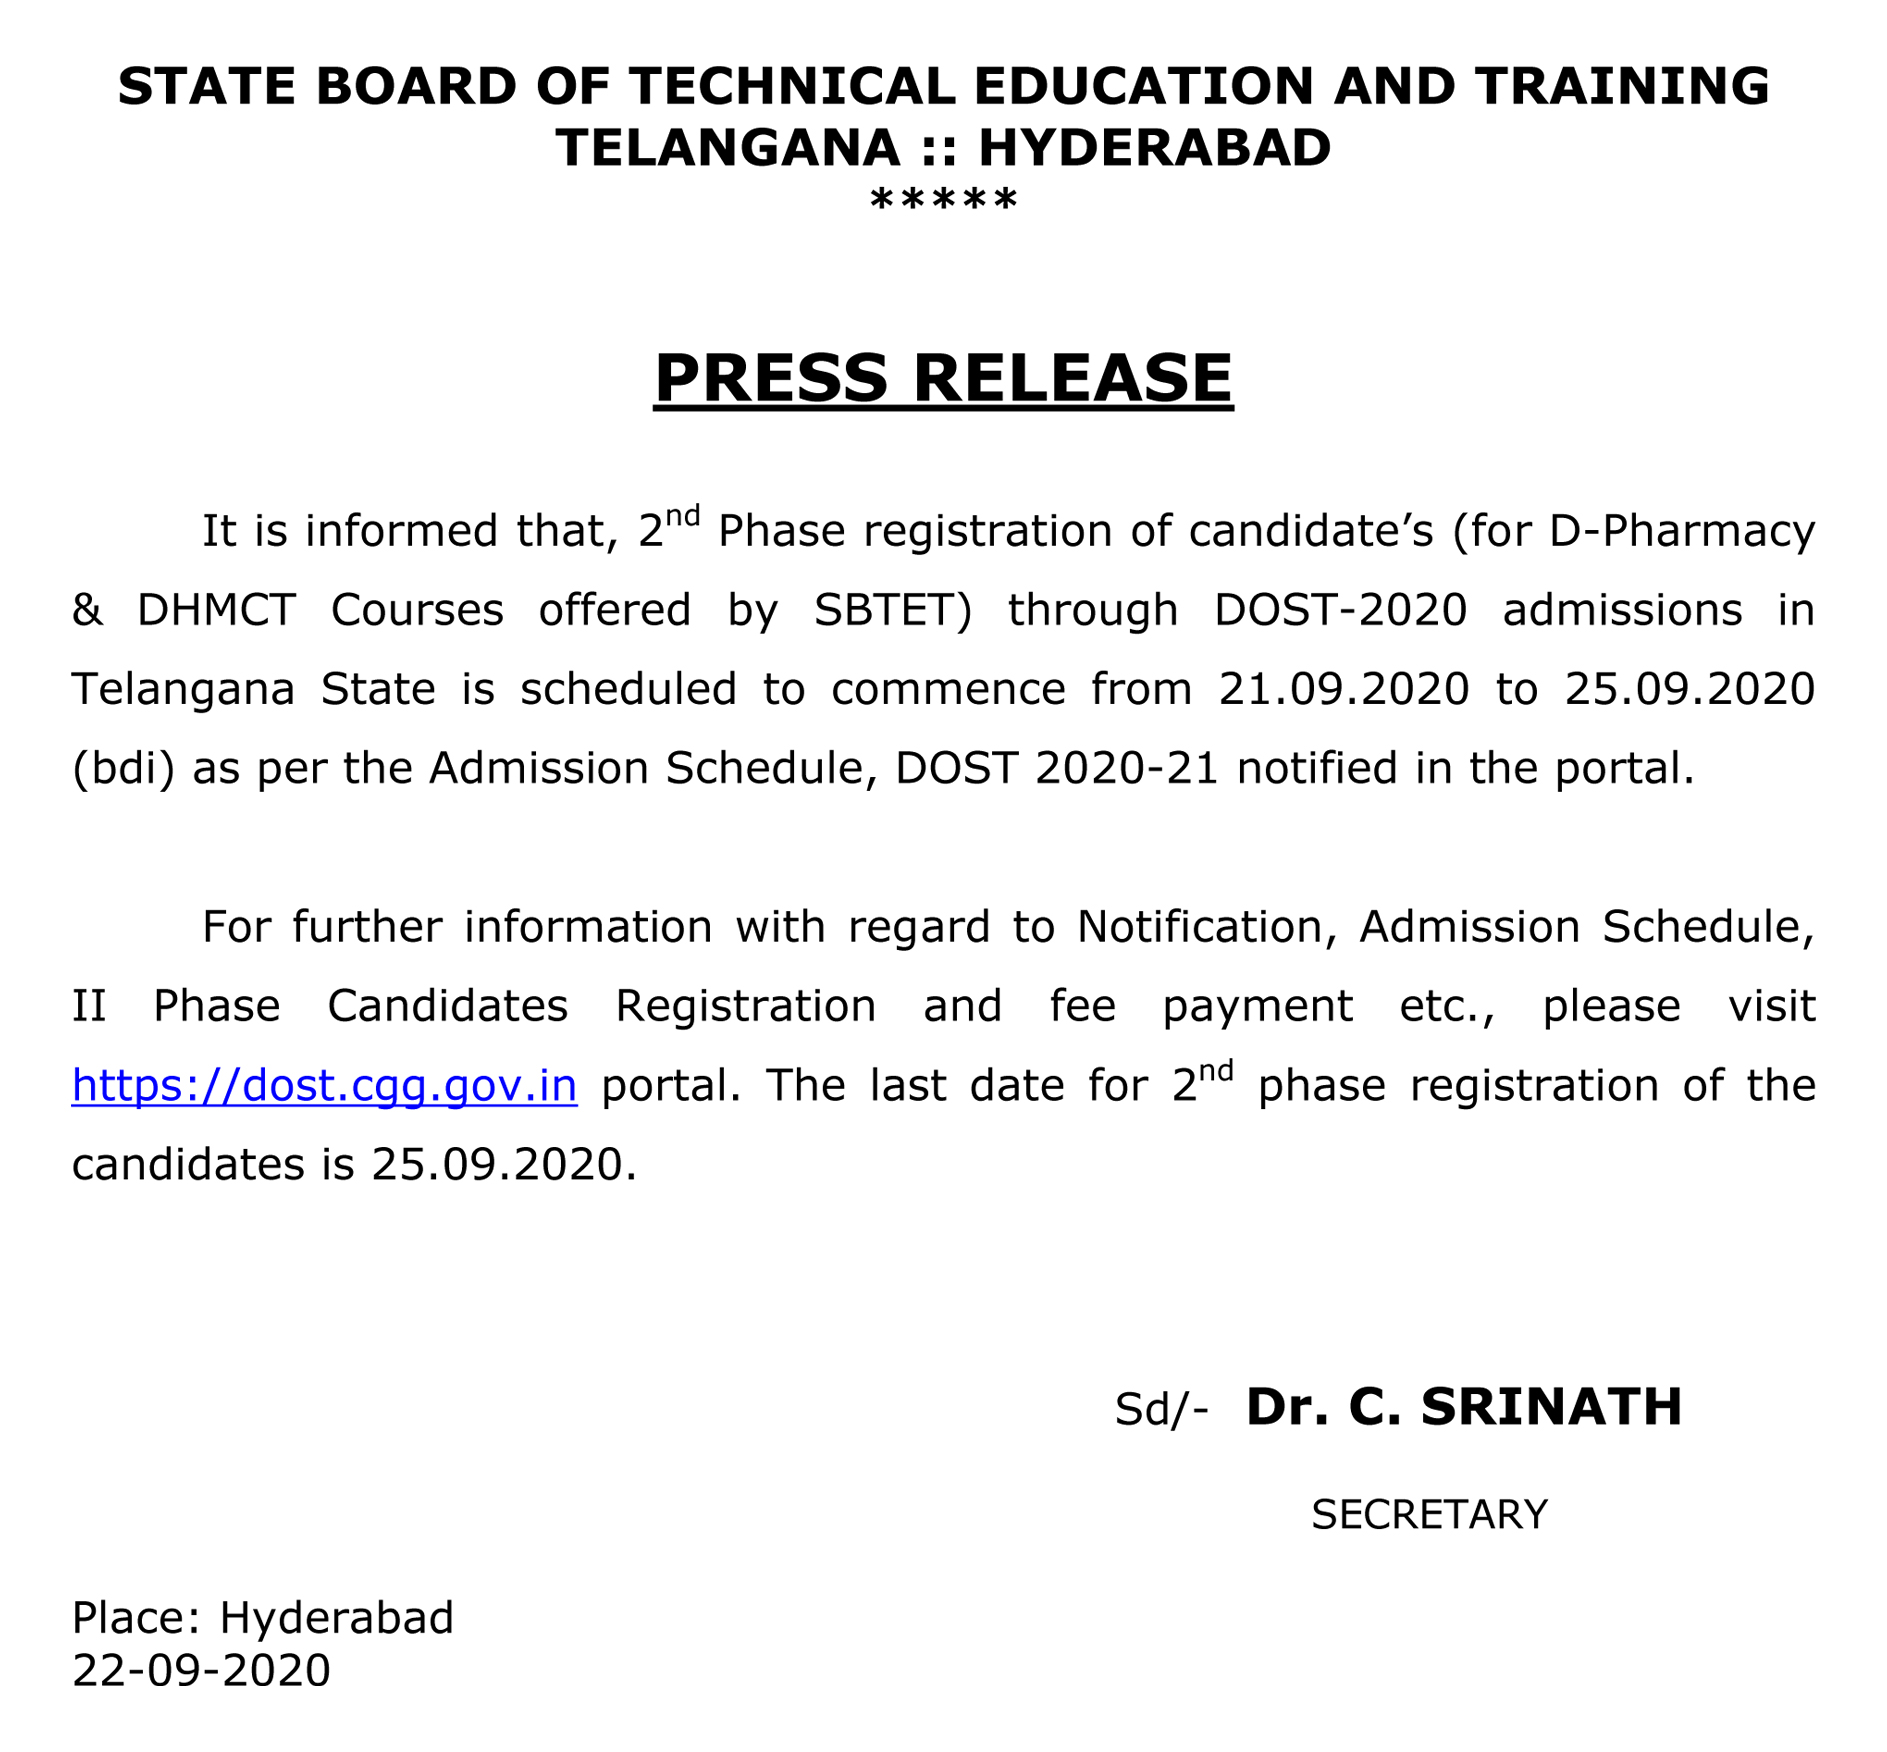 SBTET 2nd Phase (For D-Pharmacy & DHMCT) Registration Admission Scehdule 2020-21